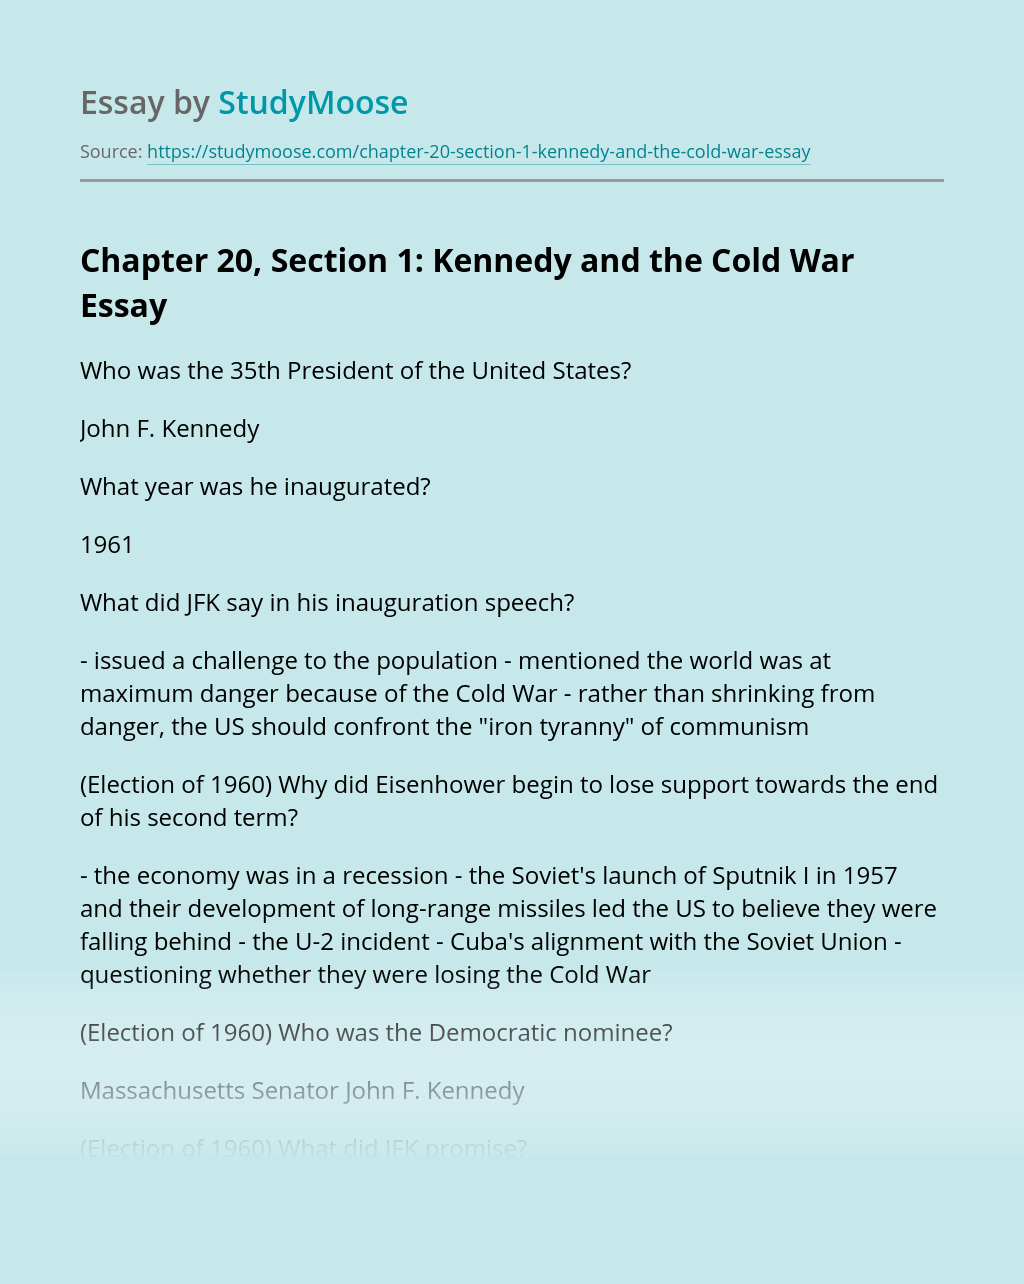 Chapter 20, Section 1: Kennedy and the Cold War